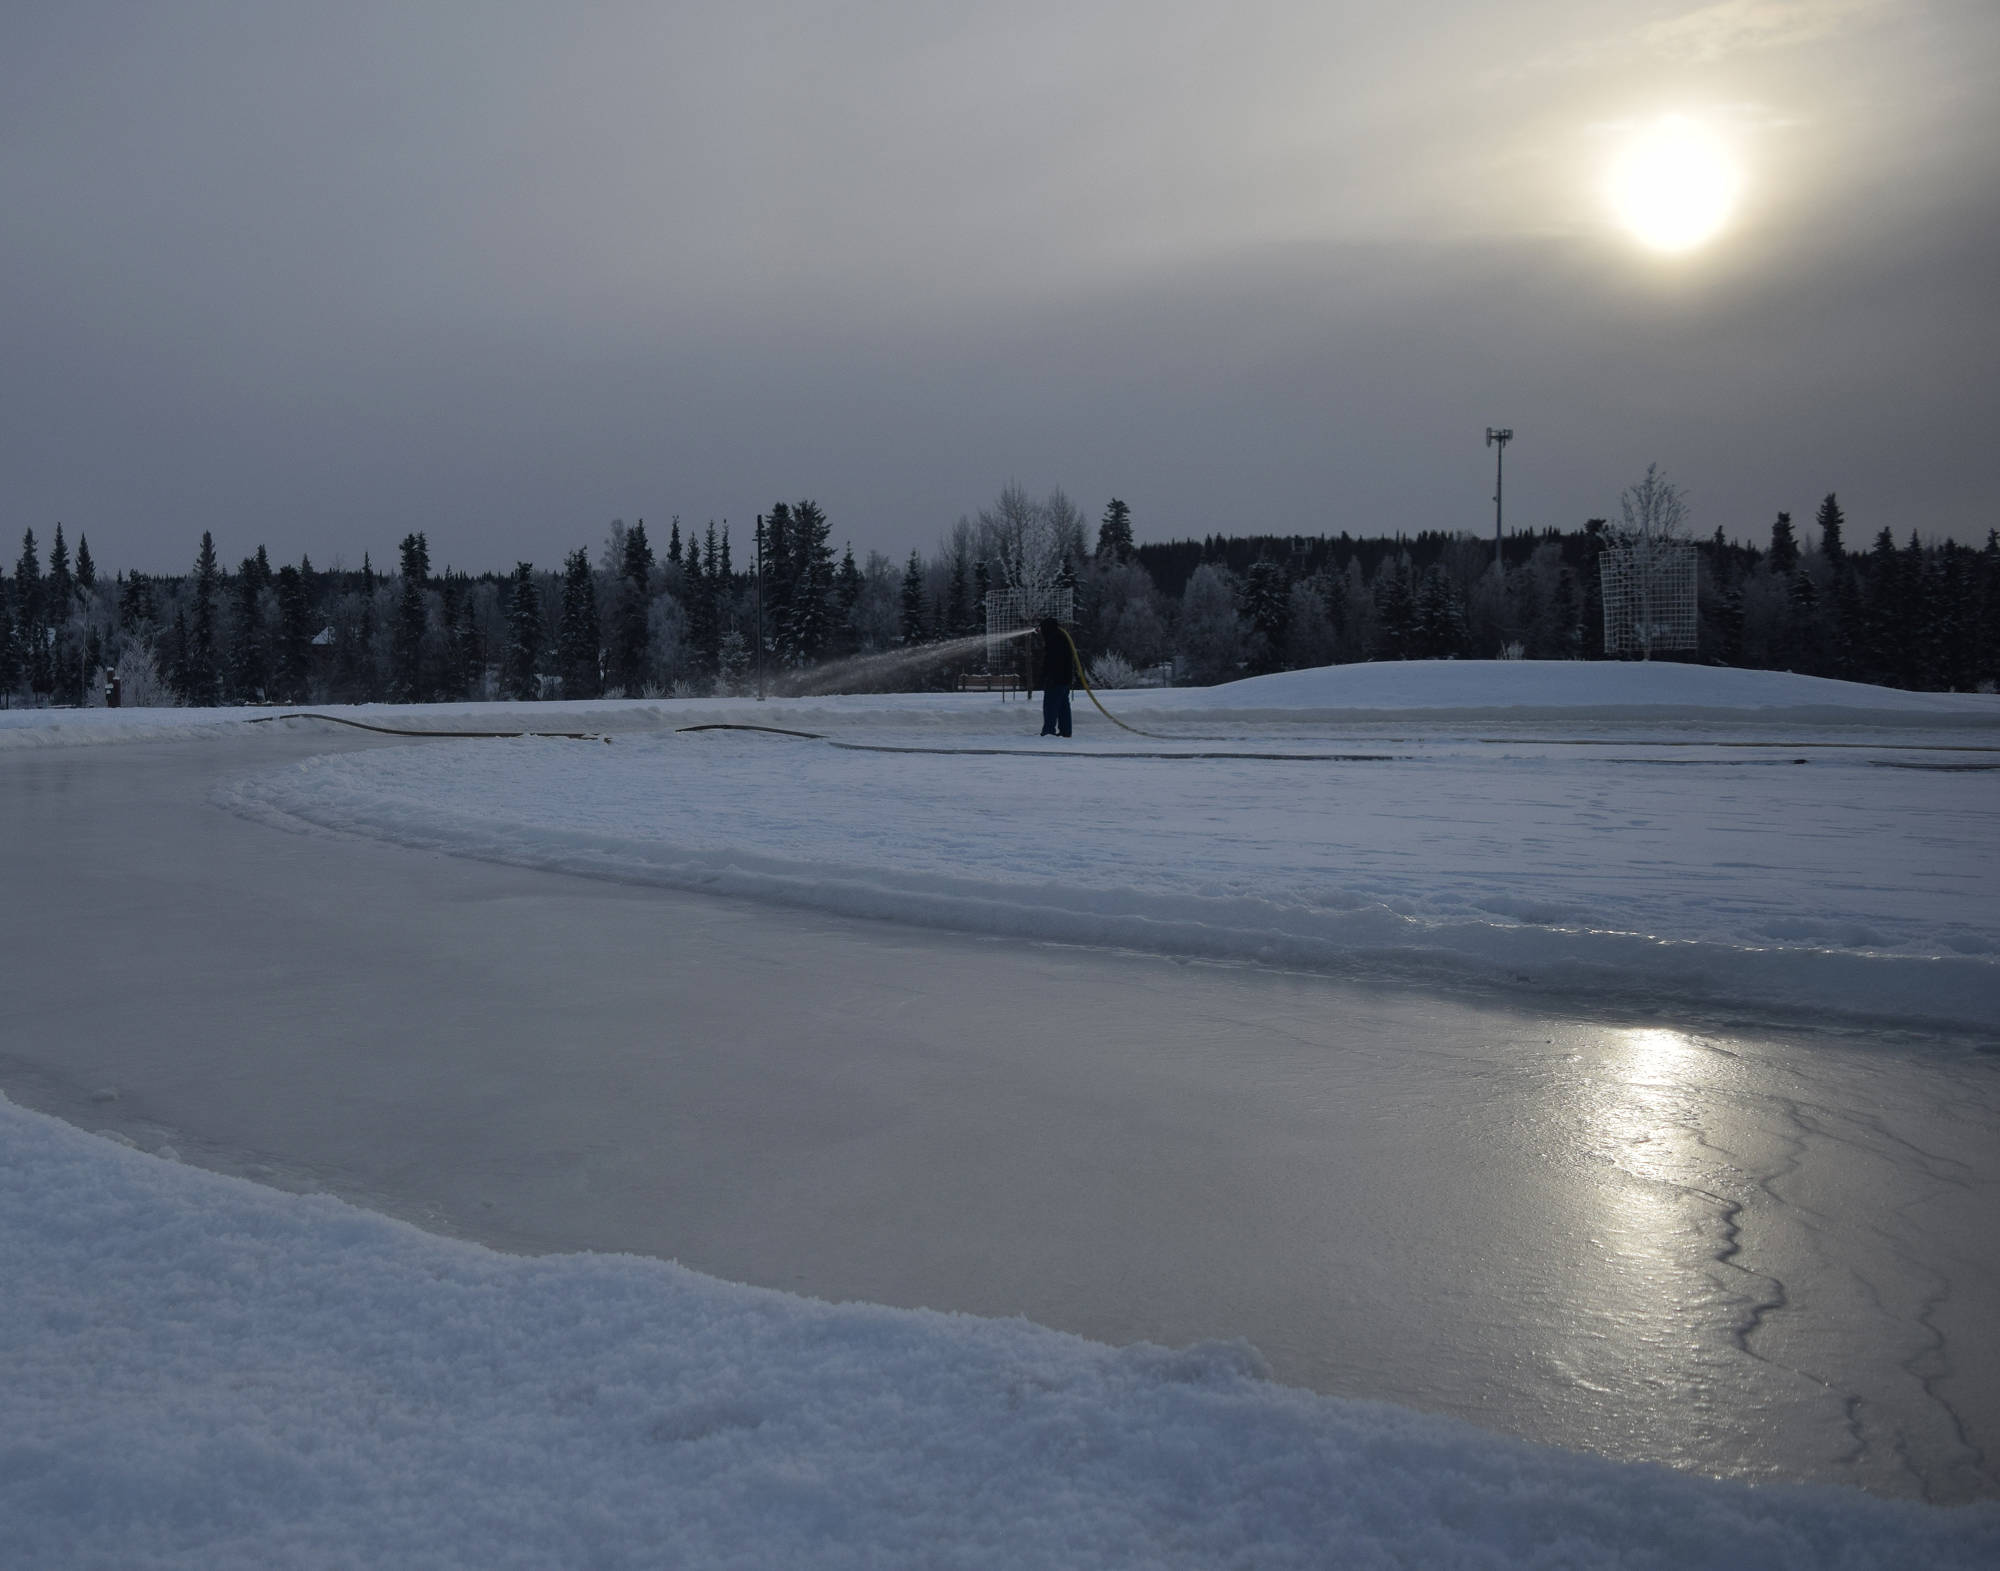 A Soldotna Parks & Recreation worker sprays a layer of water to be frozen into a skating rink Thursday at Soldotna Creek Park. (Photo by Joey Klecka/Peninsula Clarion)